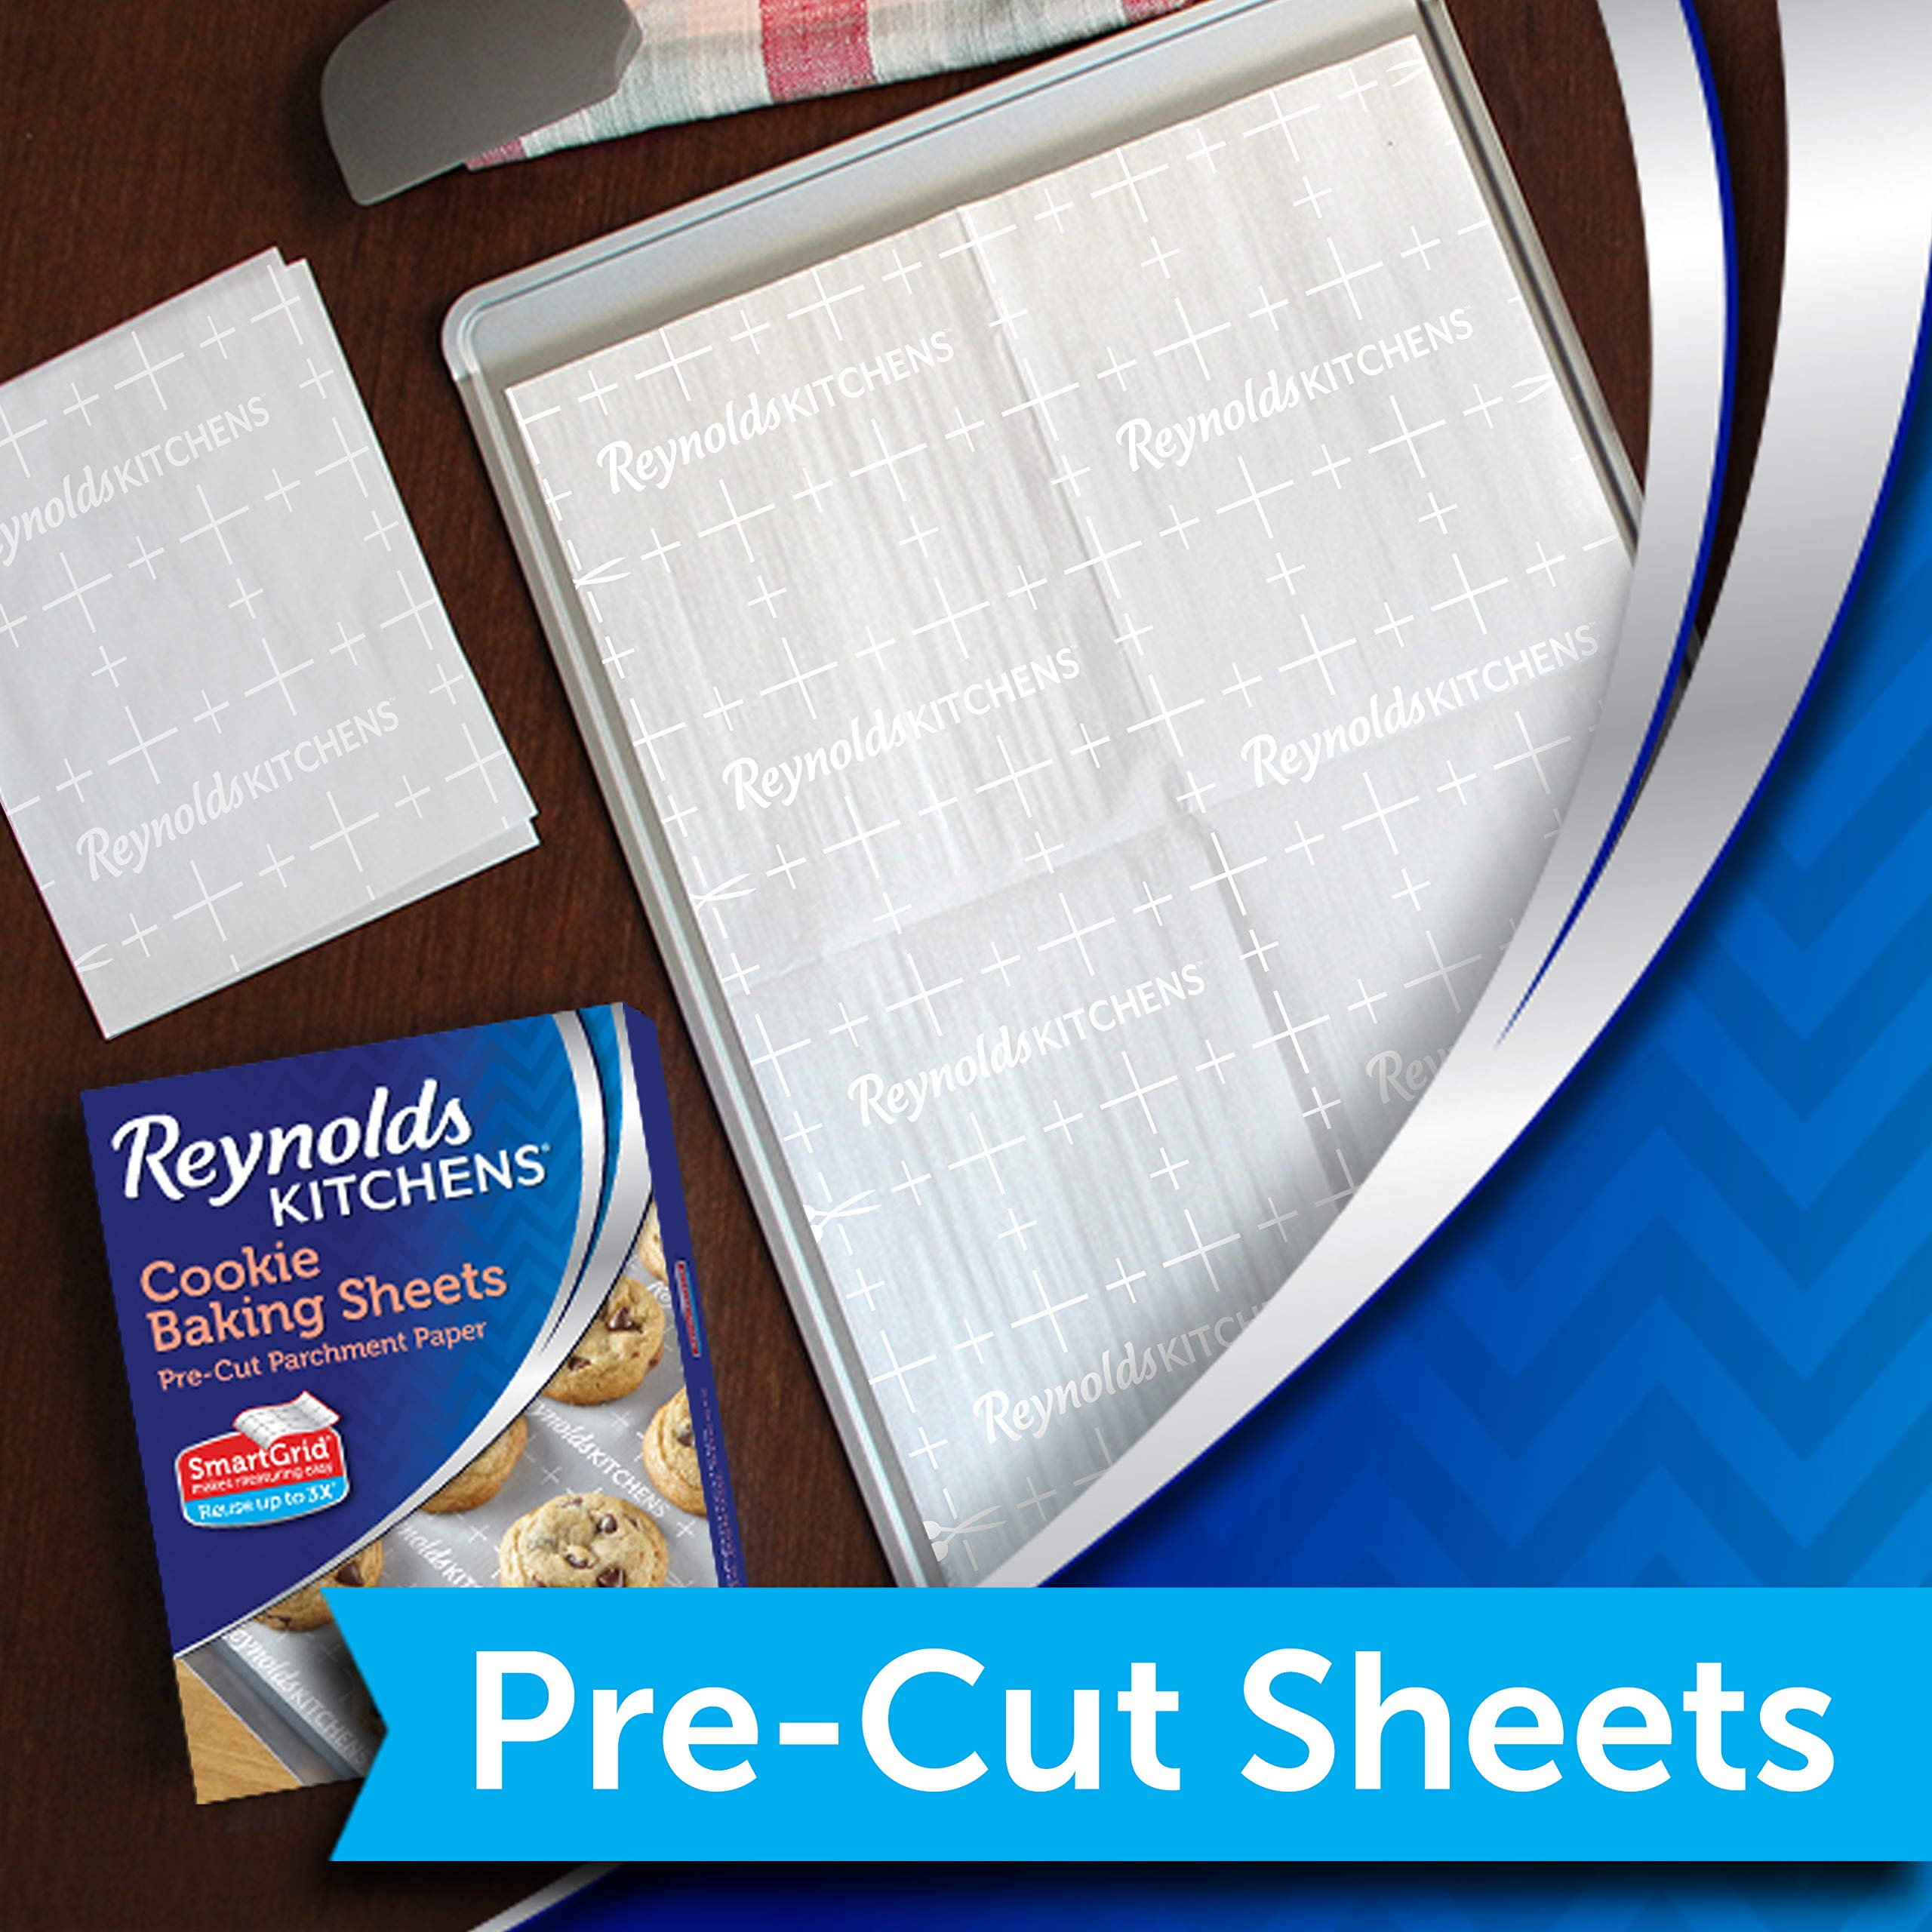 Reynolds Cookie Baking Sheets Non-Stick Parchment Paper, 25 Sheet, 4 Count by Reynolds (Image #2)